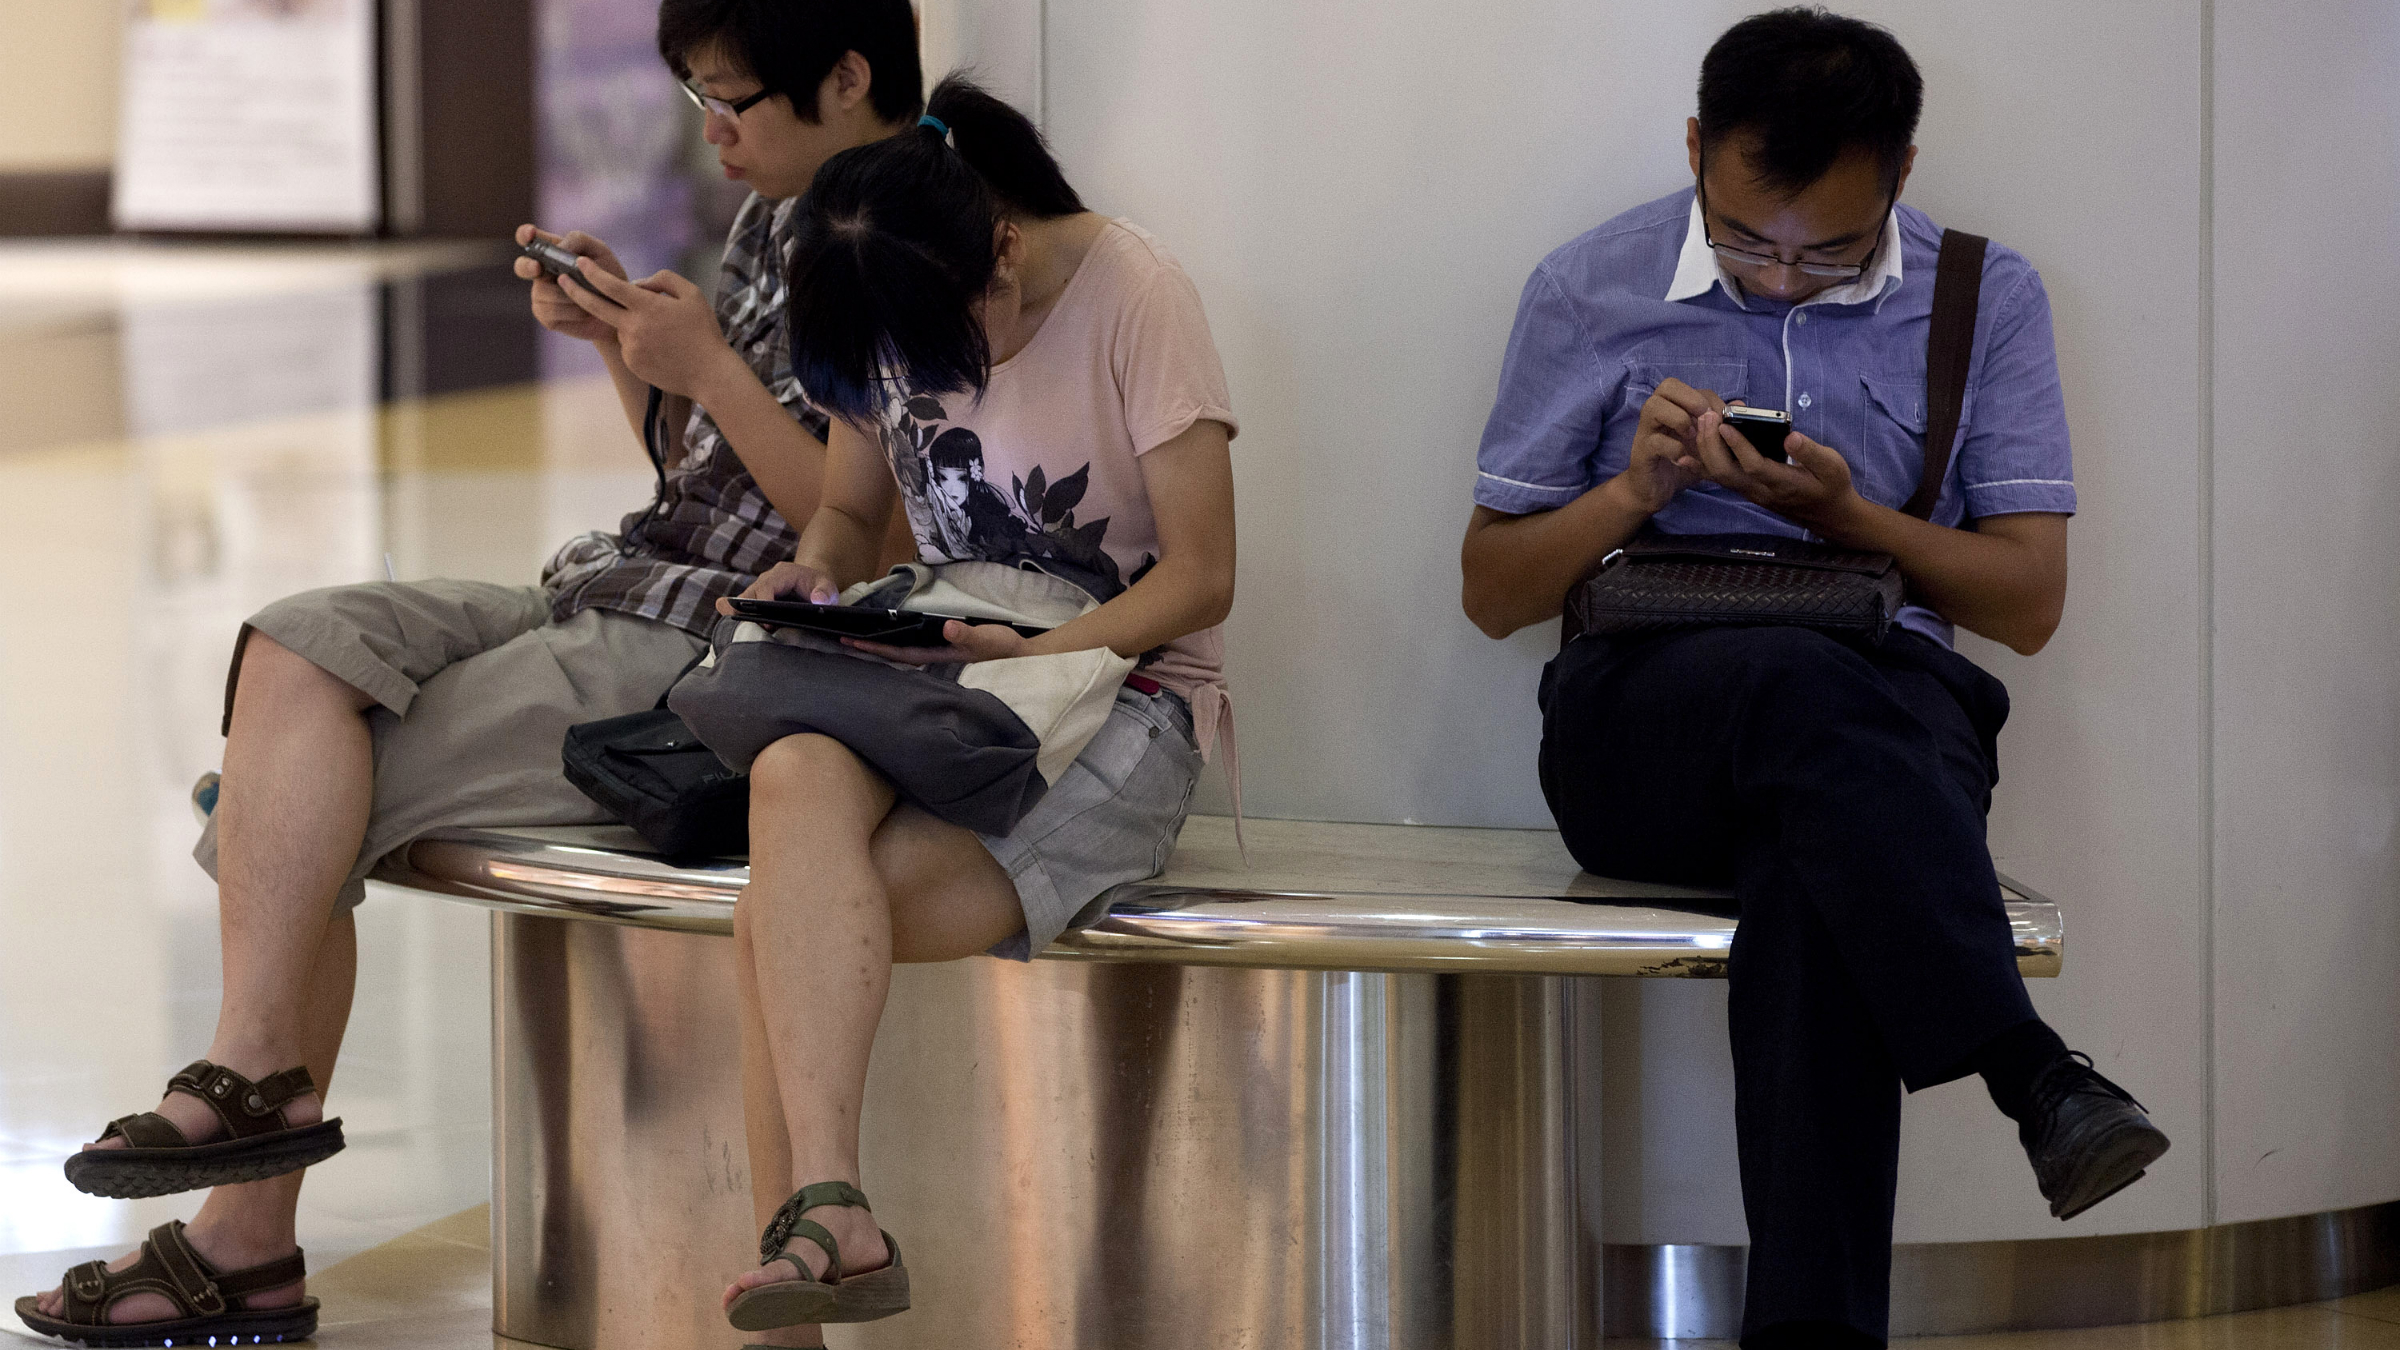 People sit on a bench inside a shopping mall using their tablet computer and smartphone in Beijing, China Monday, Aug. 19, 2013. Many famous Chinese - from pop stars to scholars, journalists to business tycoons - have amassed substantial online followings, and these larger-than-life personalities don't always hew to the Communist Party line. Now Beijing is tightening its grip on China's already heavily restricted Internet by making influential microbloggers uncomfortable when they post material the government doesn't like. (AP Photo/Andy Wong